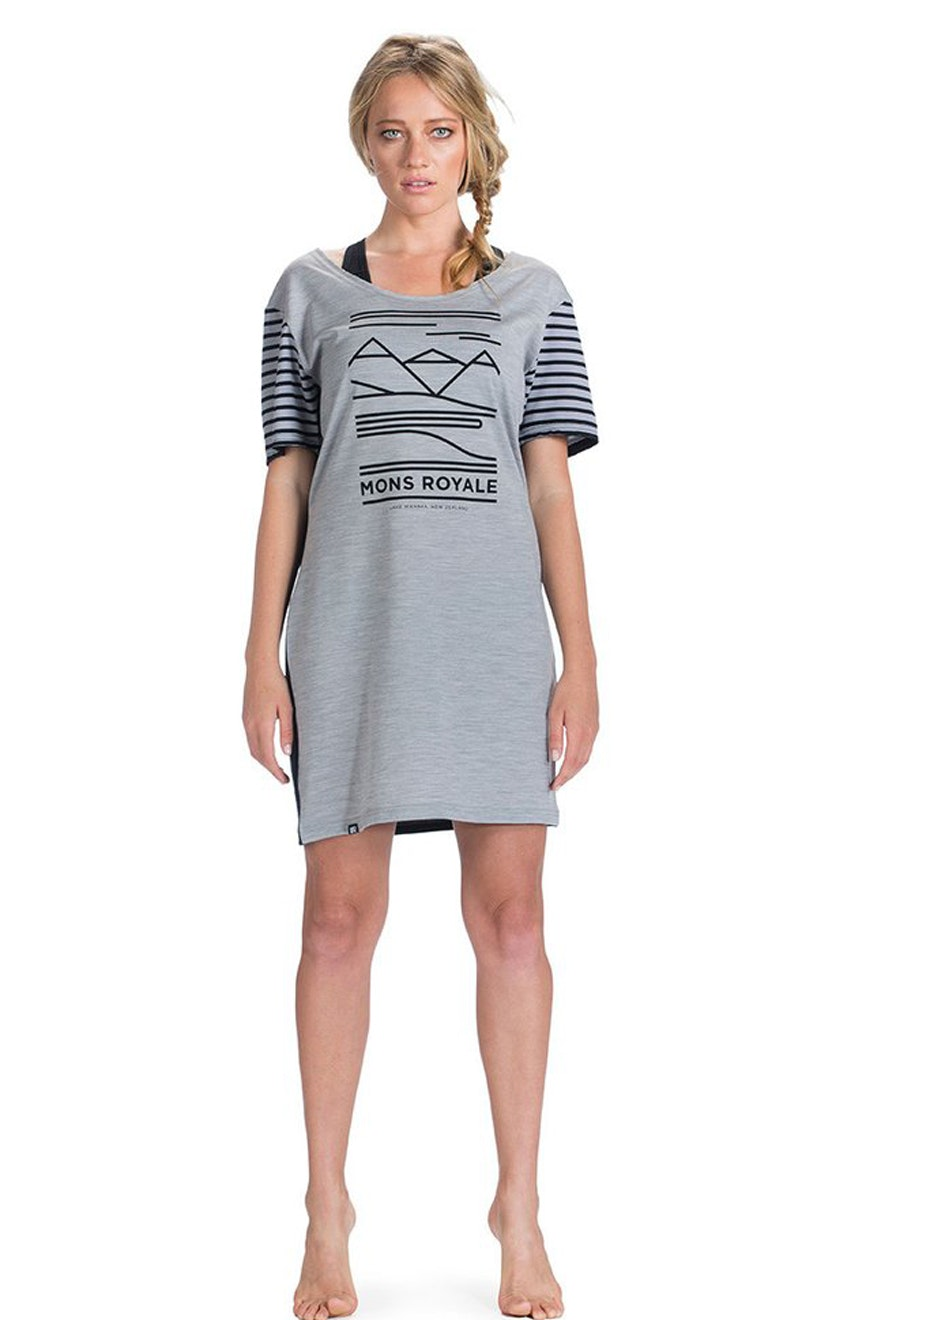 MONS ROYALE - Womens - Sunset Dress Mountain abstract - Grey Marl / Black / Black Stripe